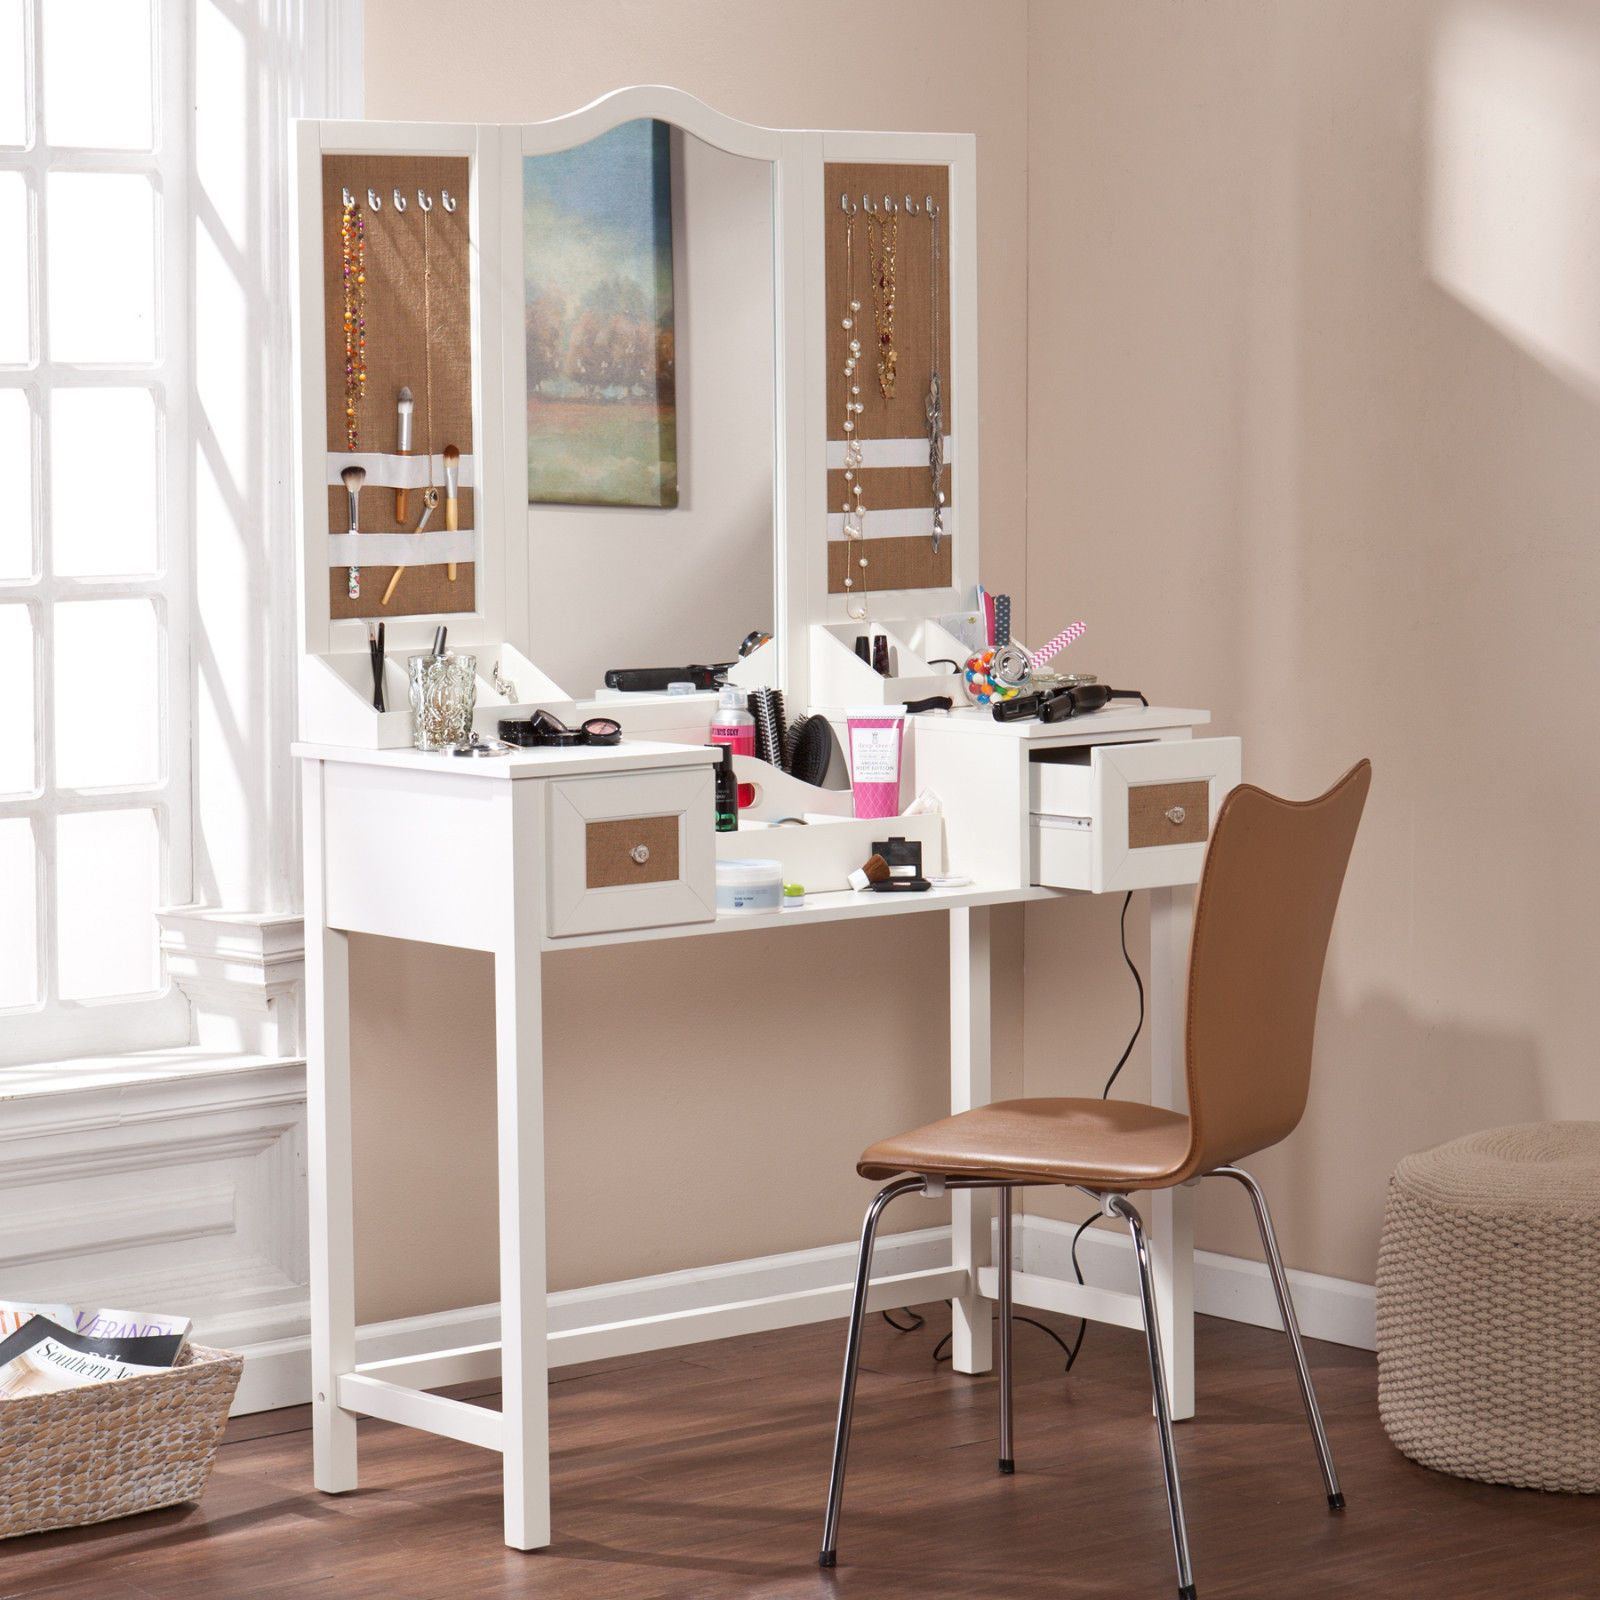 how to build a bedroom vanity | bedrooms, jewelry storage and chairs